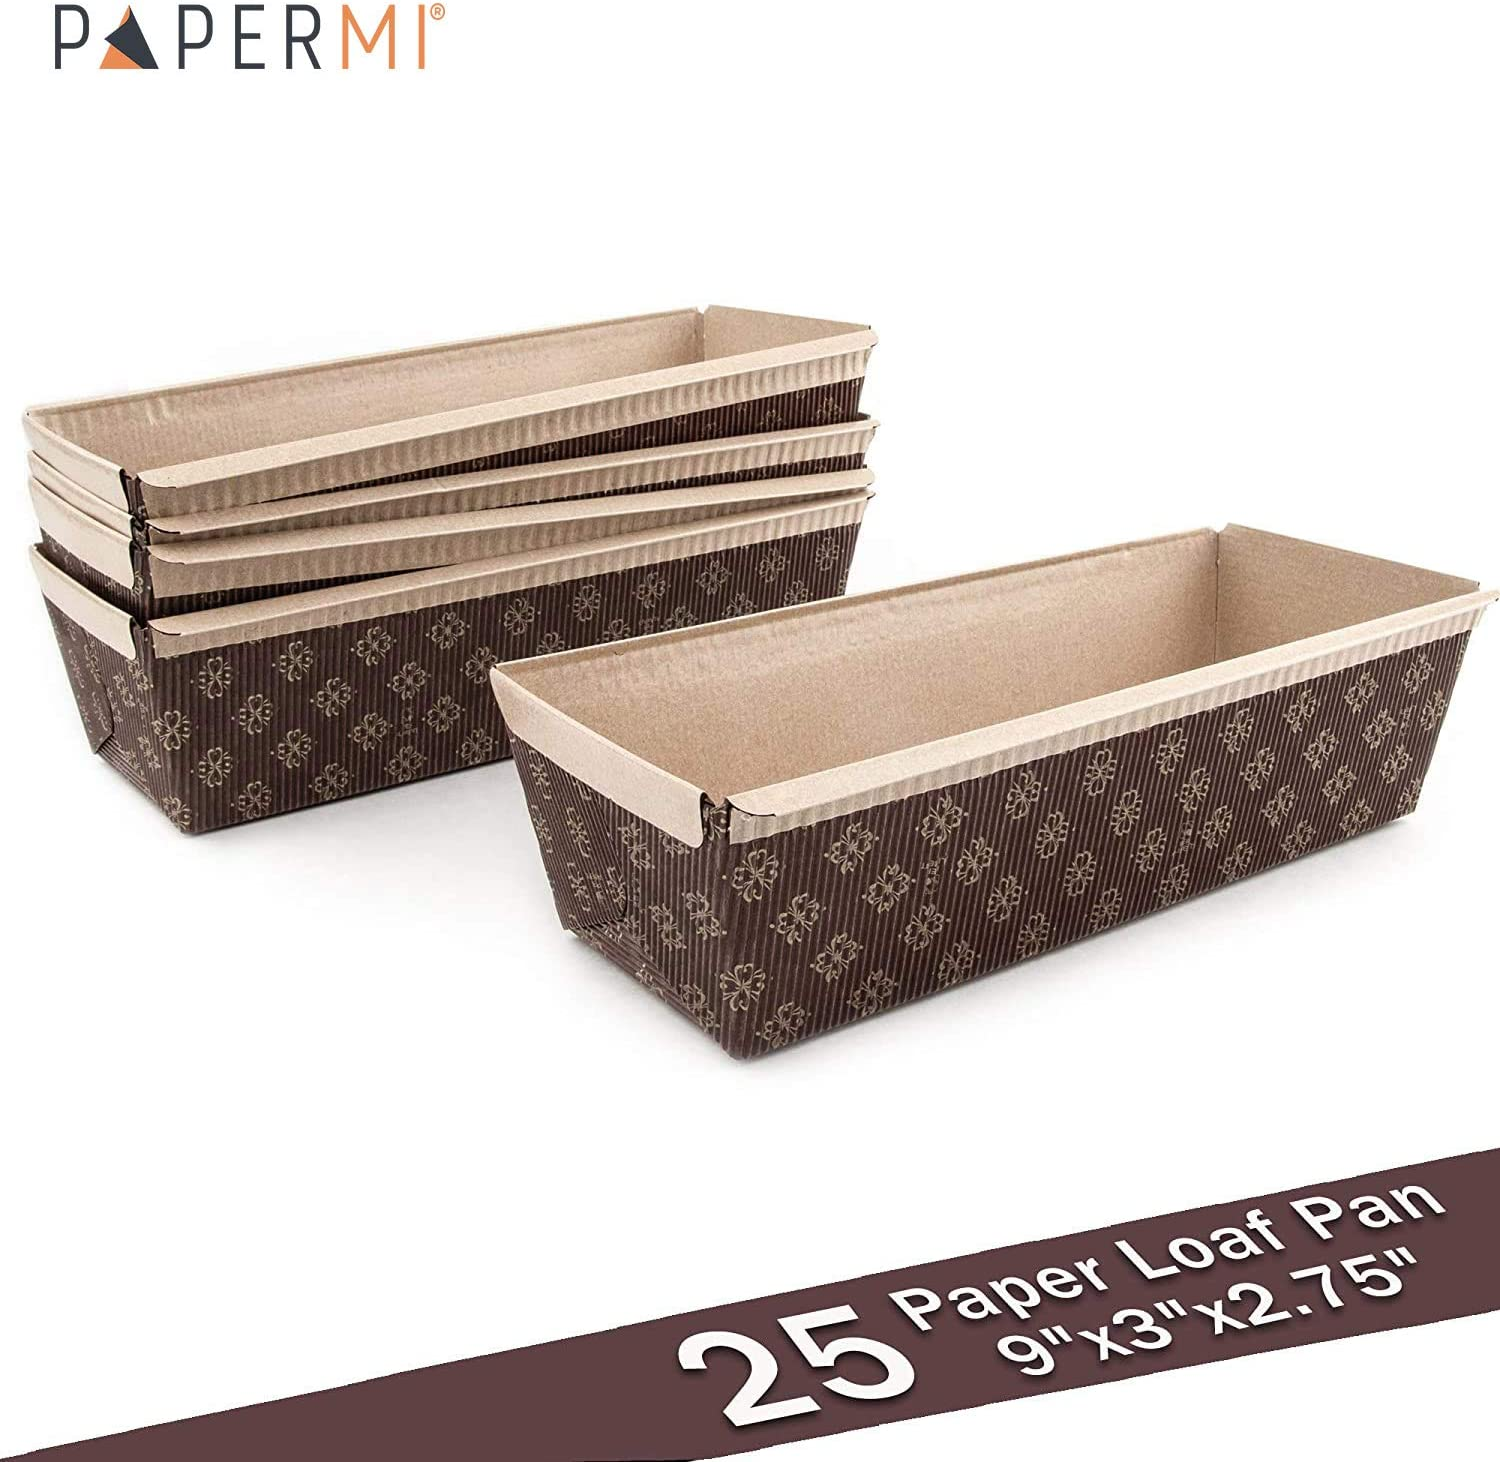 """Paper Loaf Pan, Disposable Paper Baking Loft Mold 25ct, All Natural, Recyclable, Microwave Oven Freezer Safe, Providing Beautiful Display for Baked Goods (Loft Pan 9"""" x3"""" x2.75"""")"""